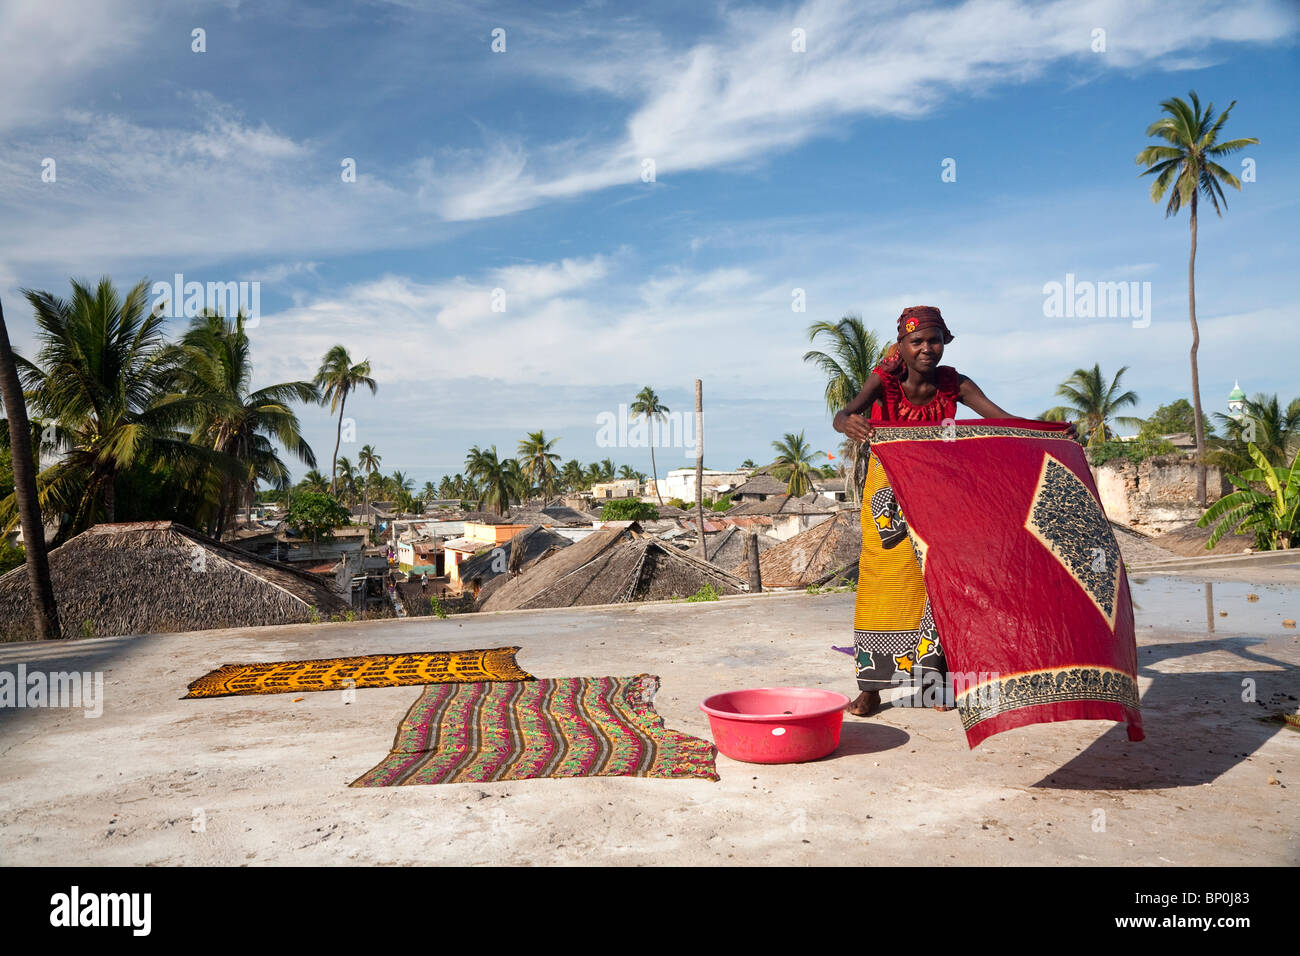 Mozambique, Ihla de Moçambique, Stone Town. A lady dries brightly-coloured Kapolanas on a rooftop in Stone - Stock Image